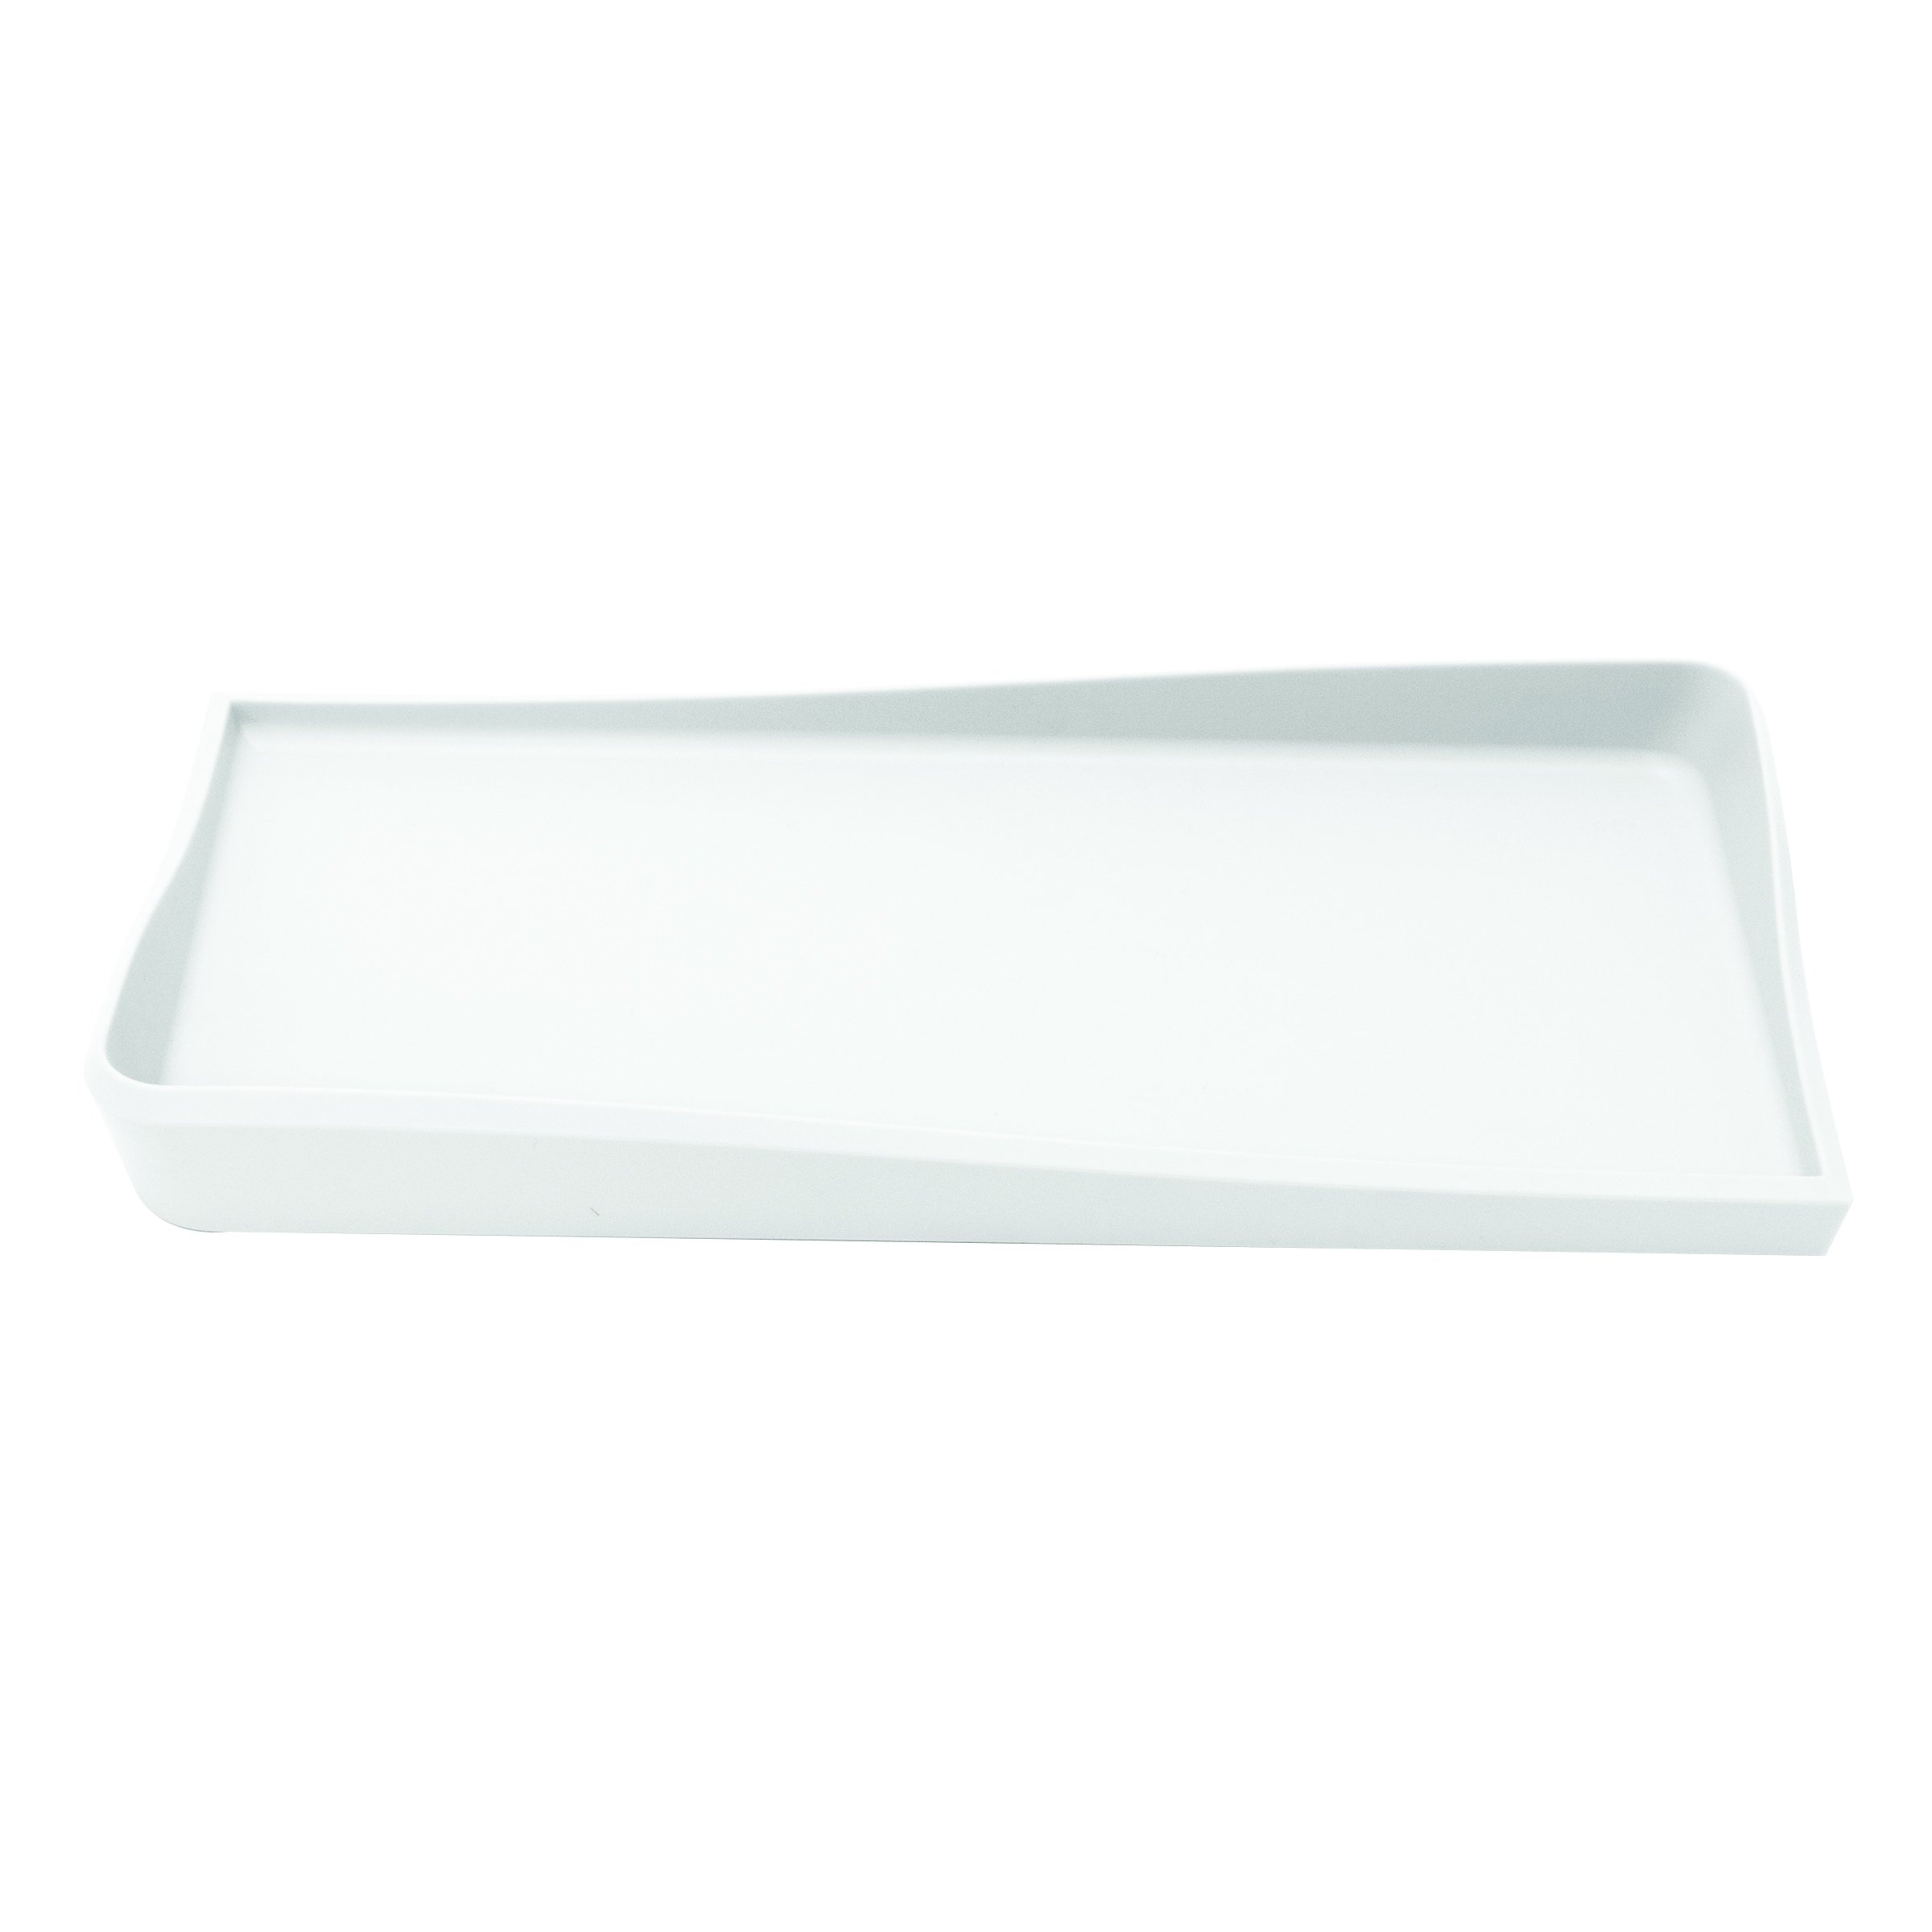 Silhouette Spaces Lifeboat Desk Tray, 12.1'' x 1.6'' x 5.8'', White (37536)